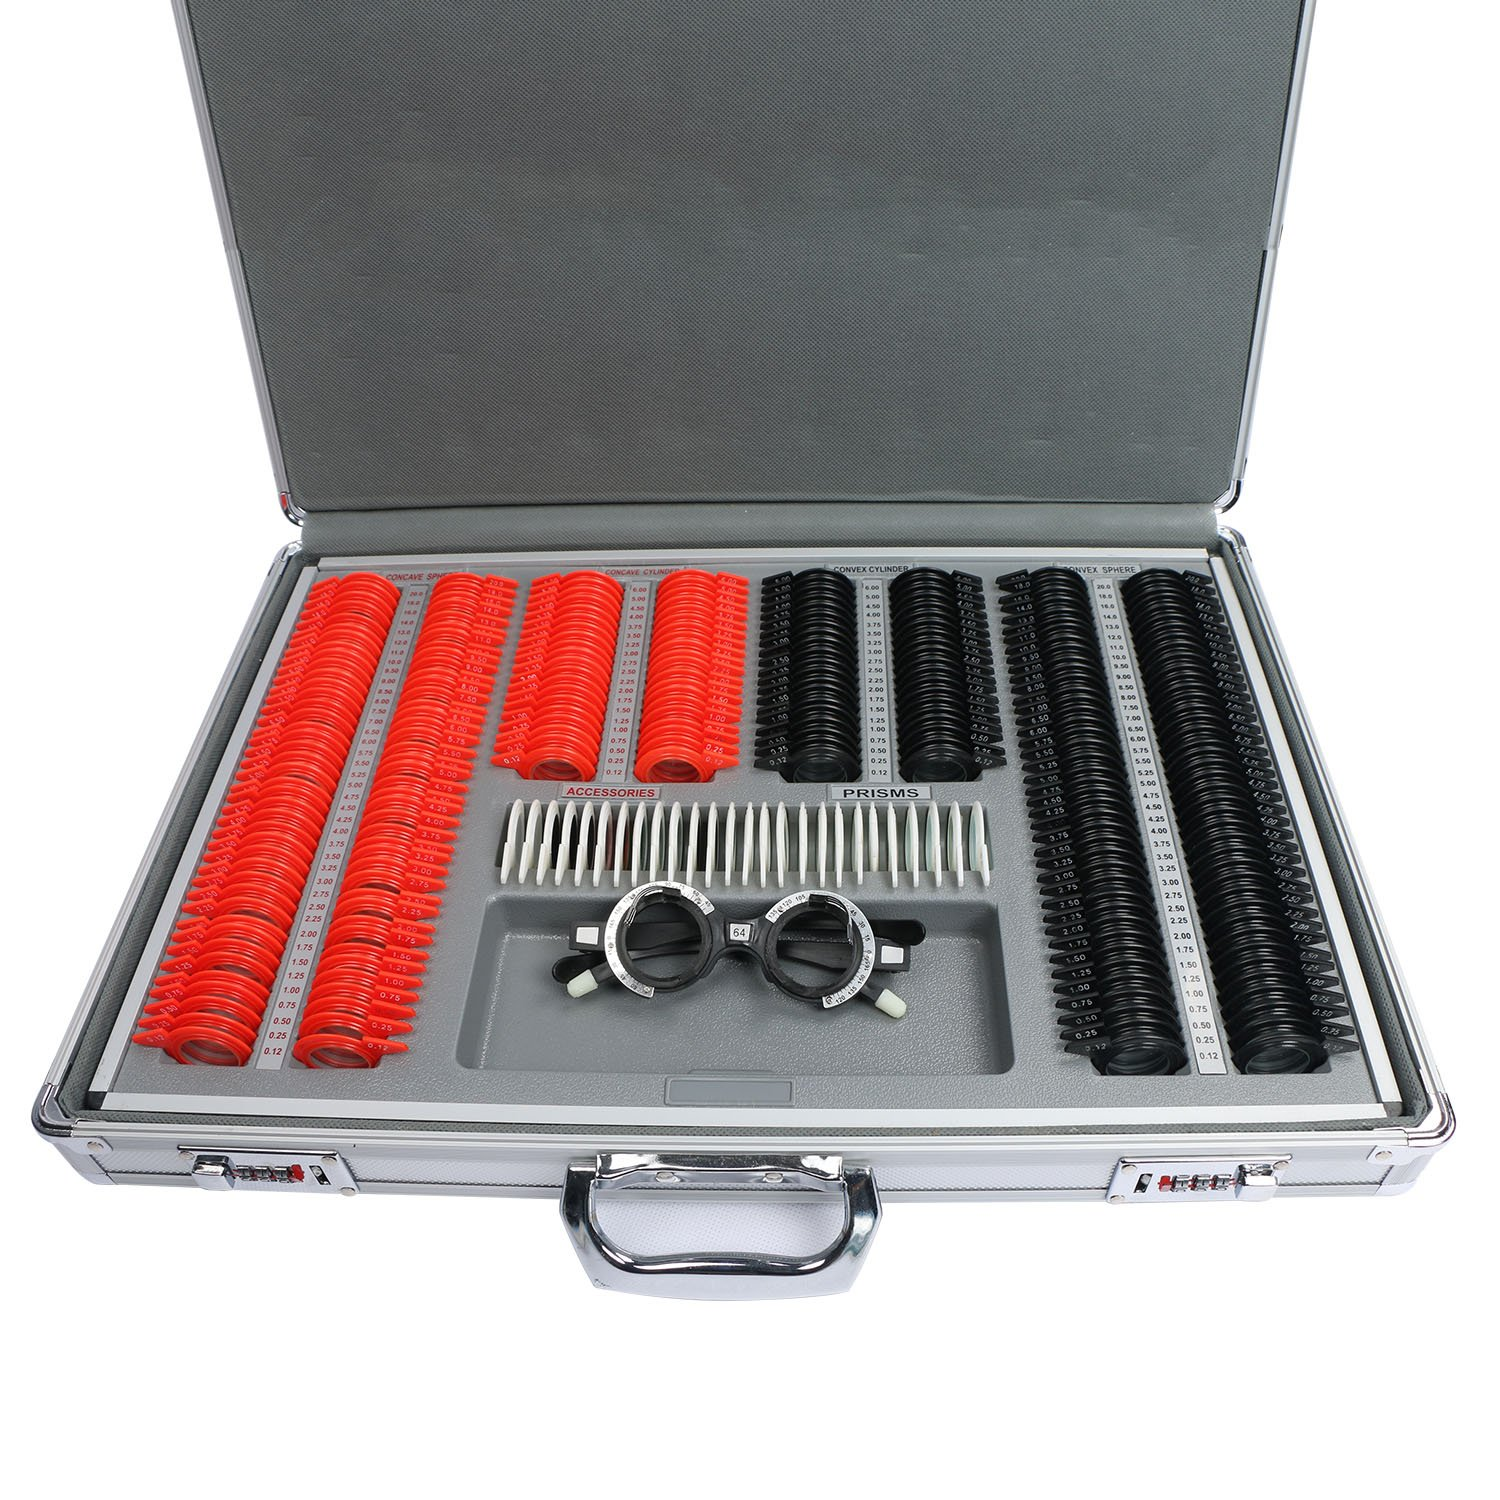 266 pcs Optical Trial Lens Set Plastic Rim Aluminium Case + Free Trial Frame